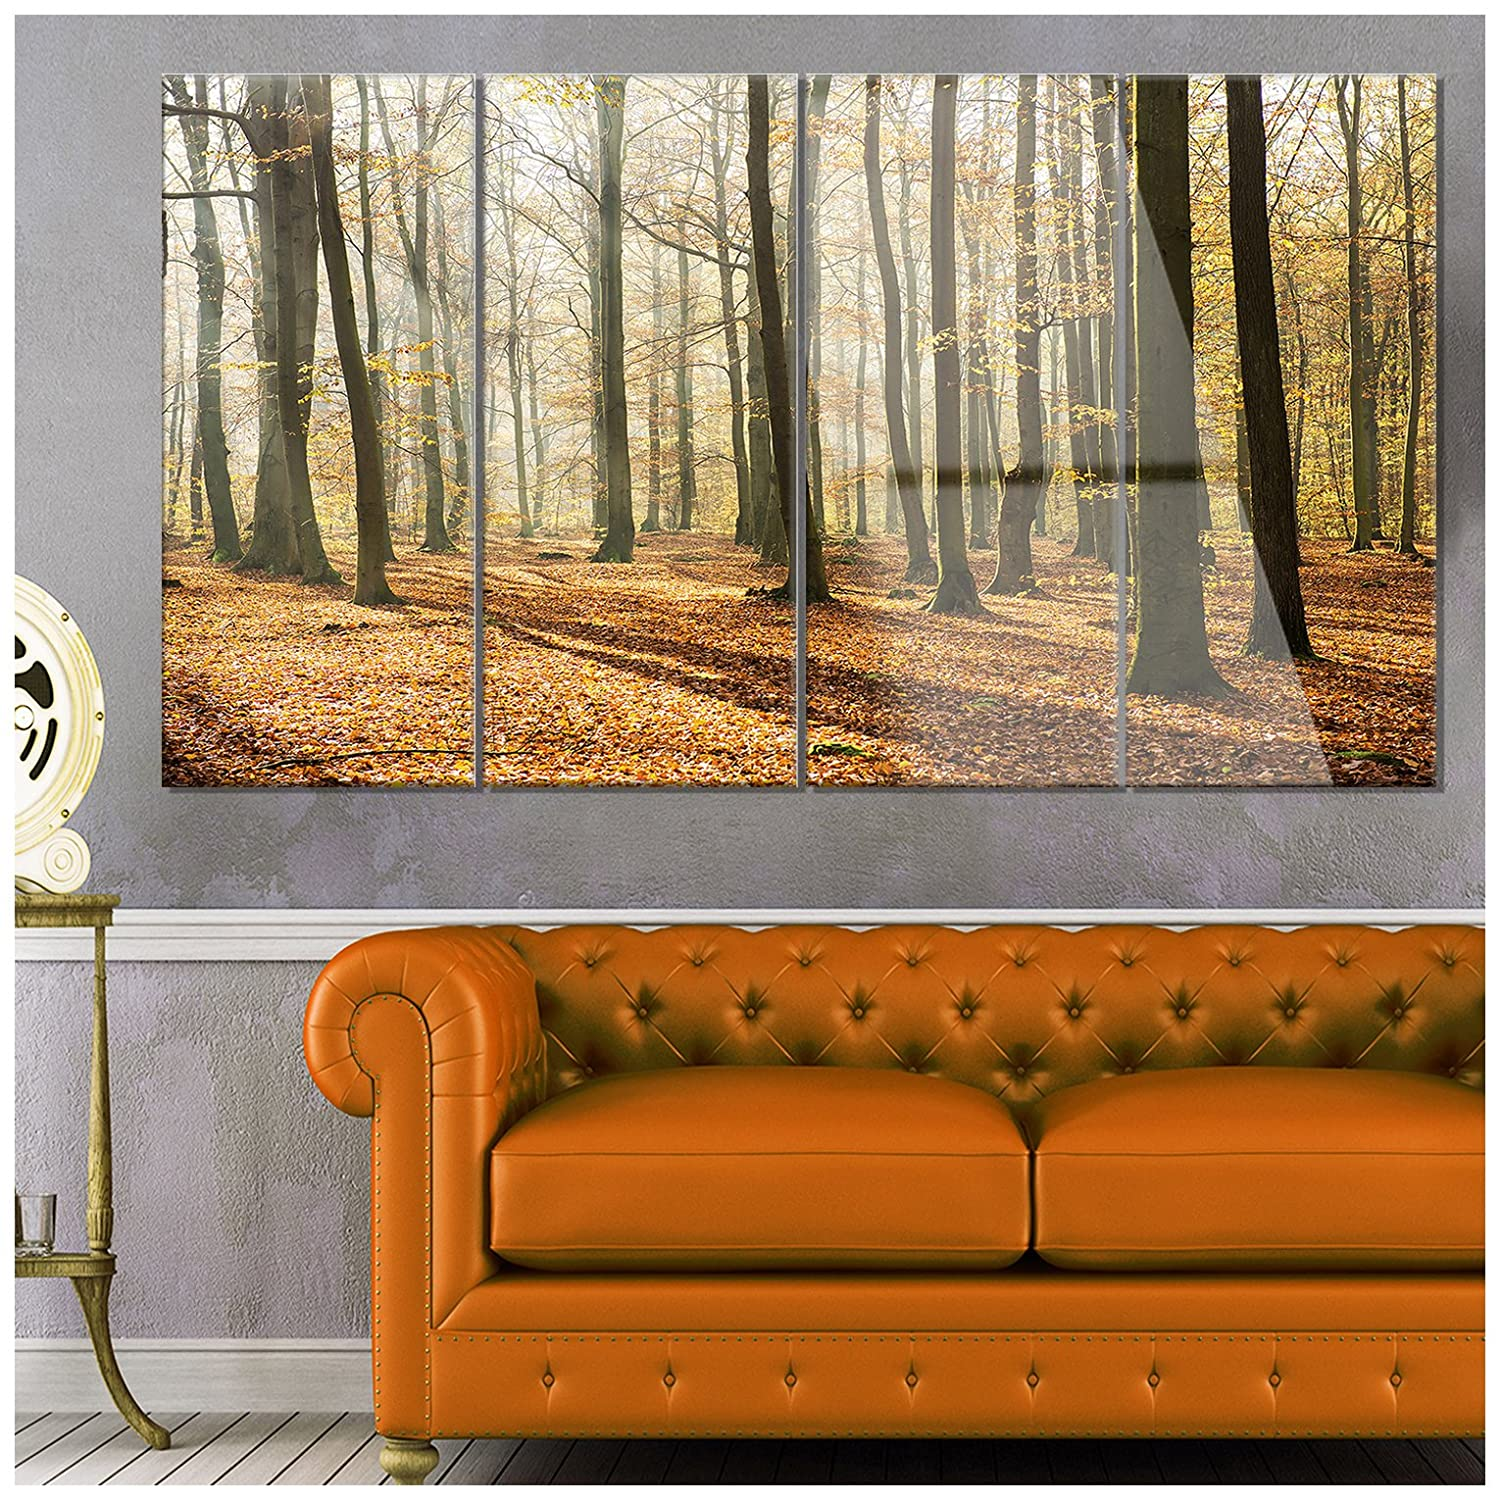 Designart Bright Autumn Day in Thick Modern Forest Glossy Metal Wall Art 28 H/x/60 W/x/1 D 5PE Brown